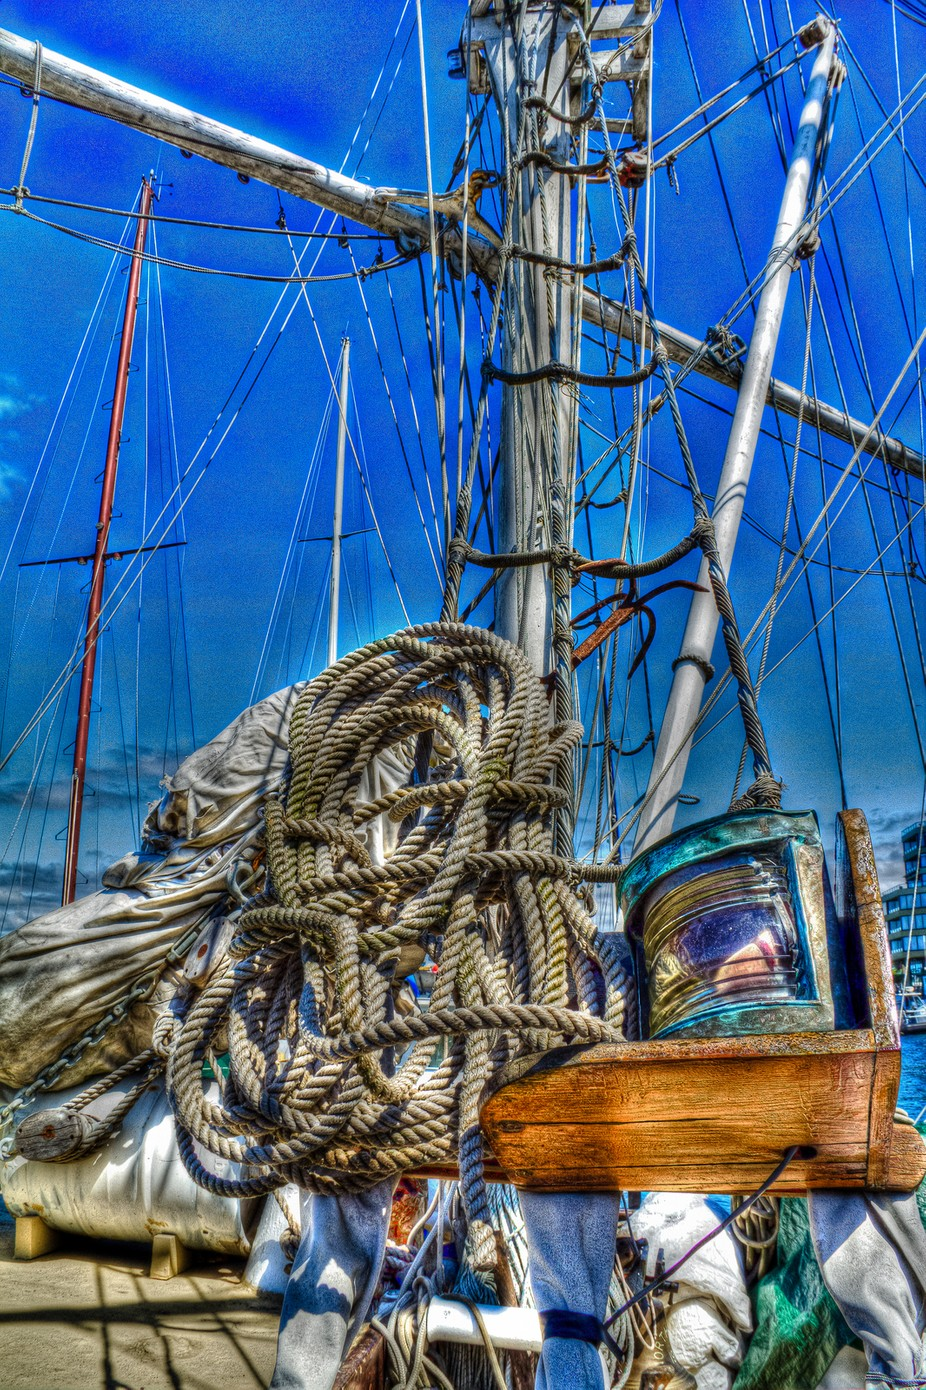 A antique sailing schooner in Victoria British Columbia